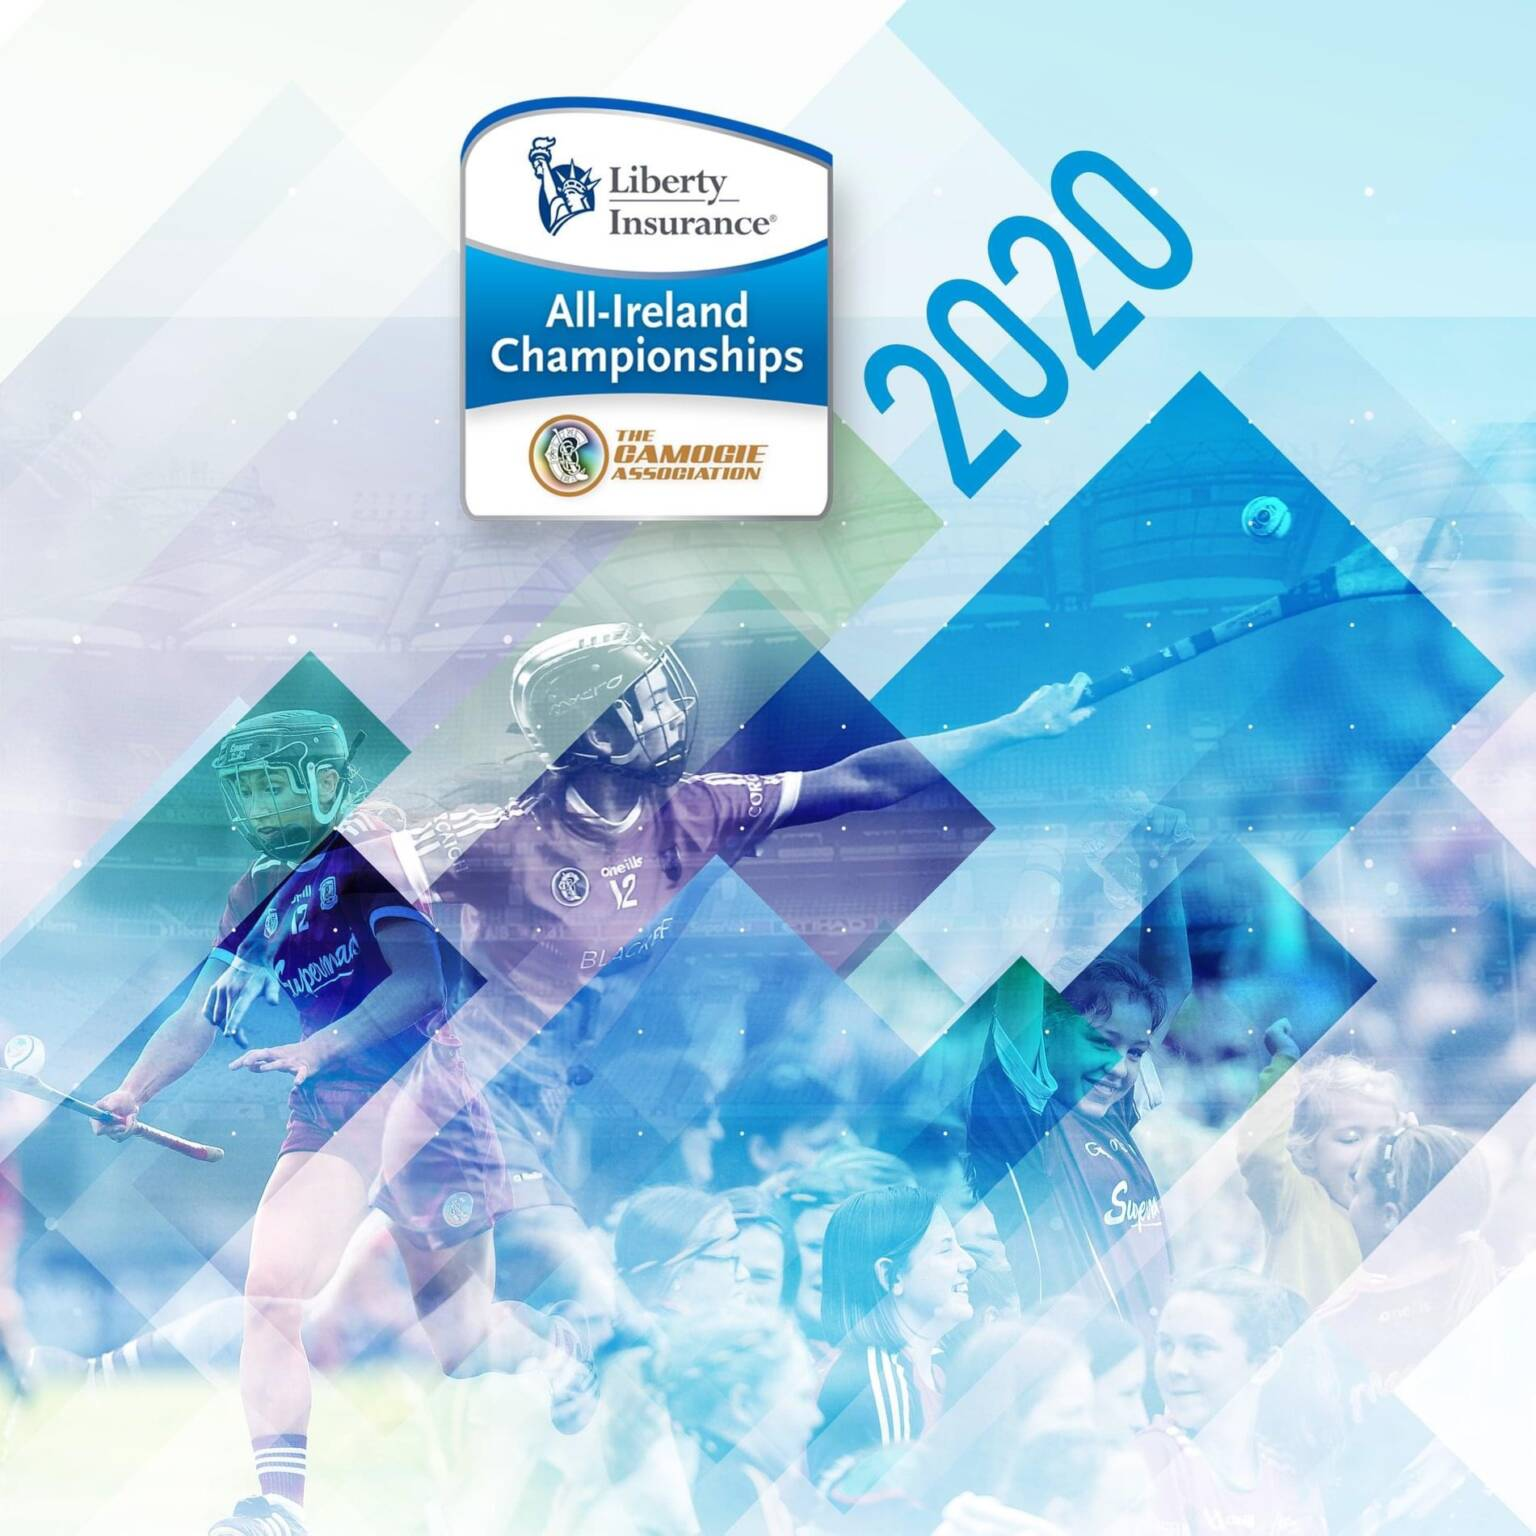 Promotional poster for the 2020 Liberty Insurance All Ireland championship